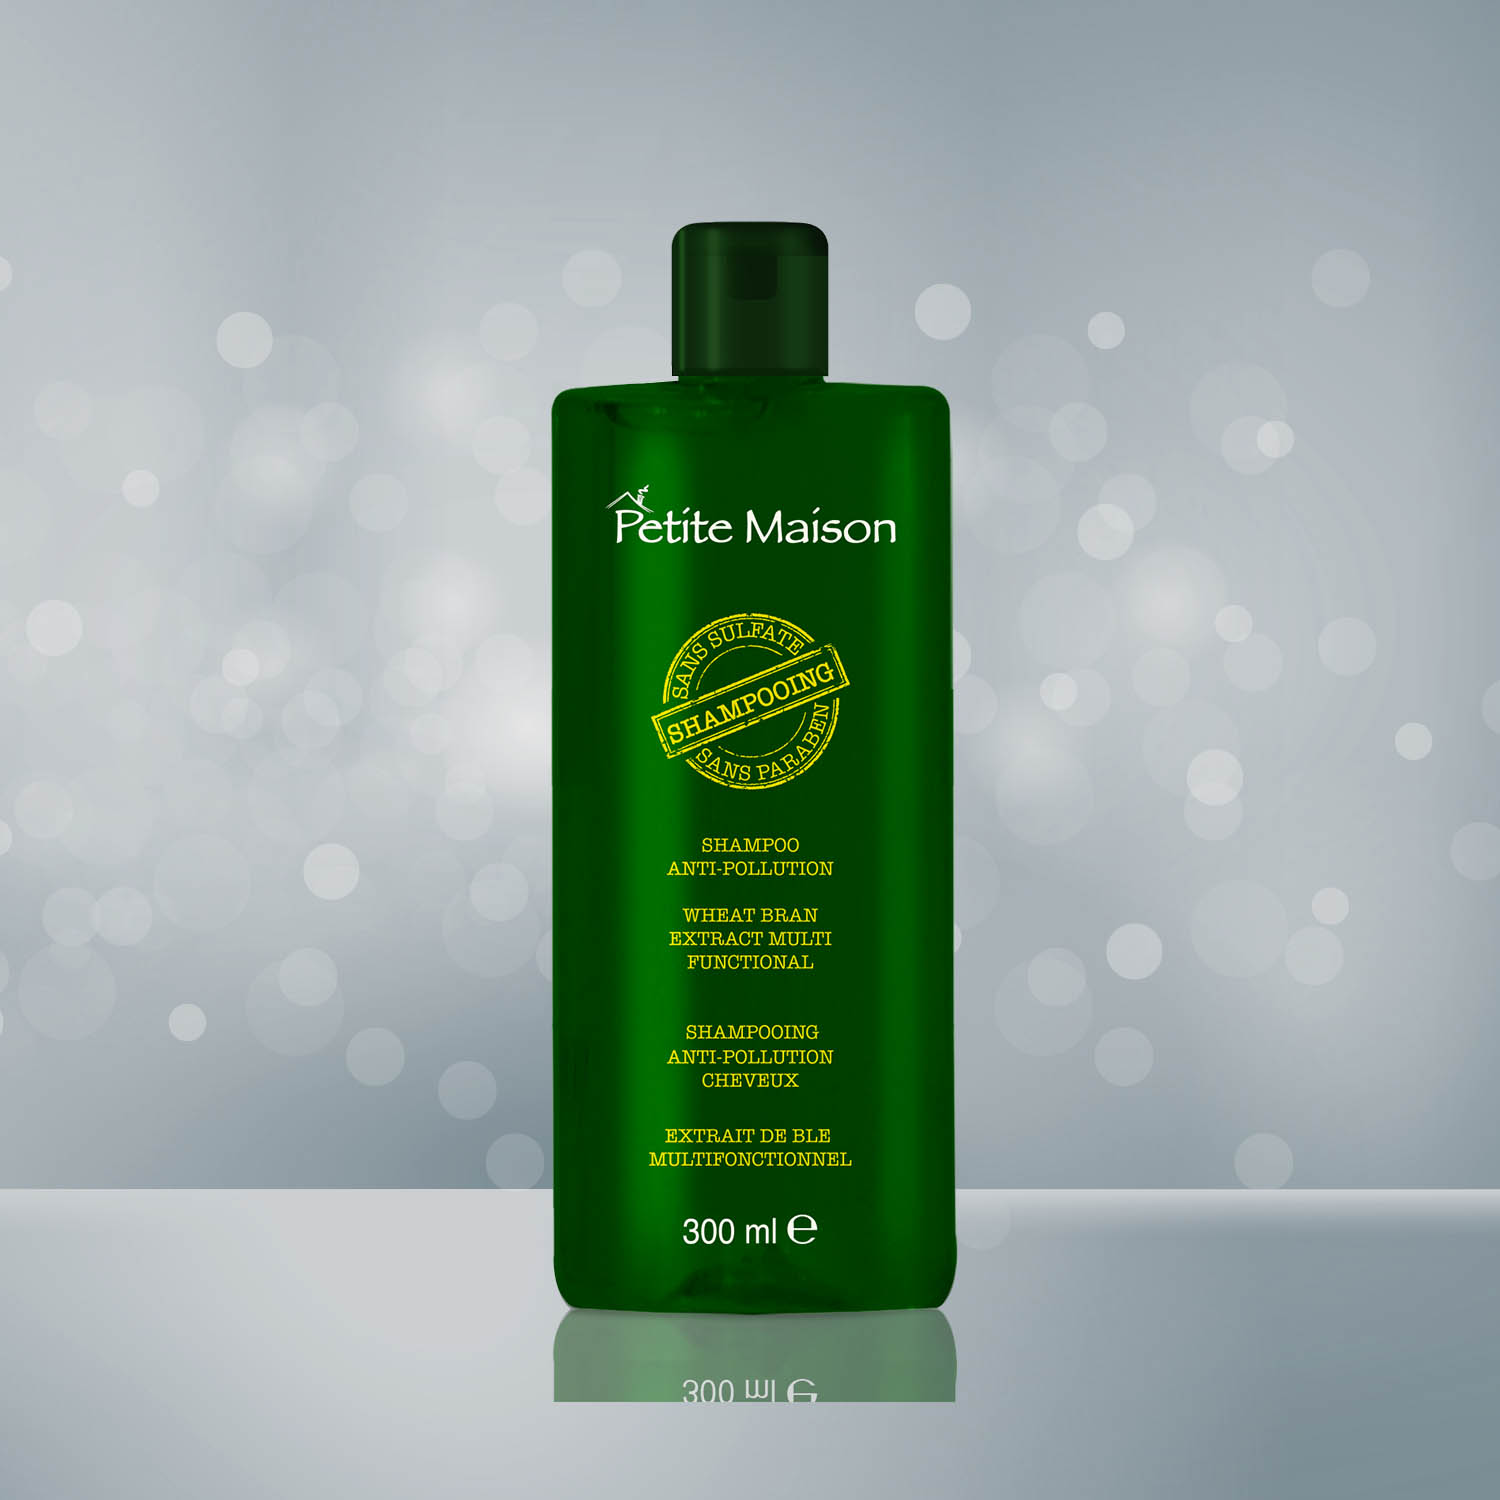 Petite Maison  Anti-Pollution Shampoo